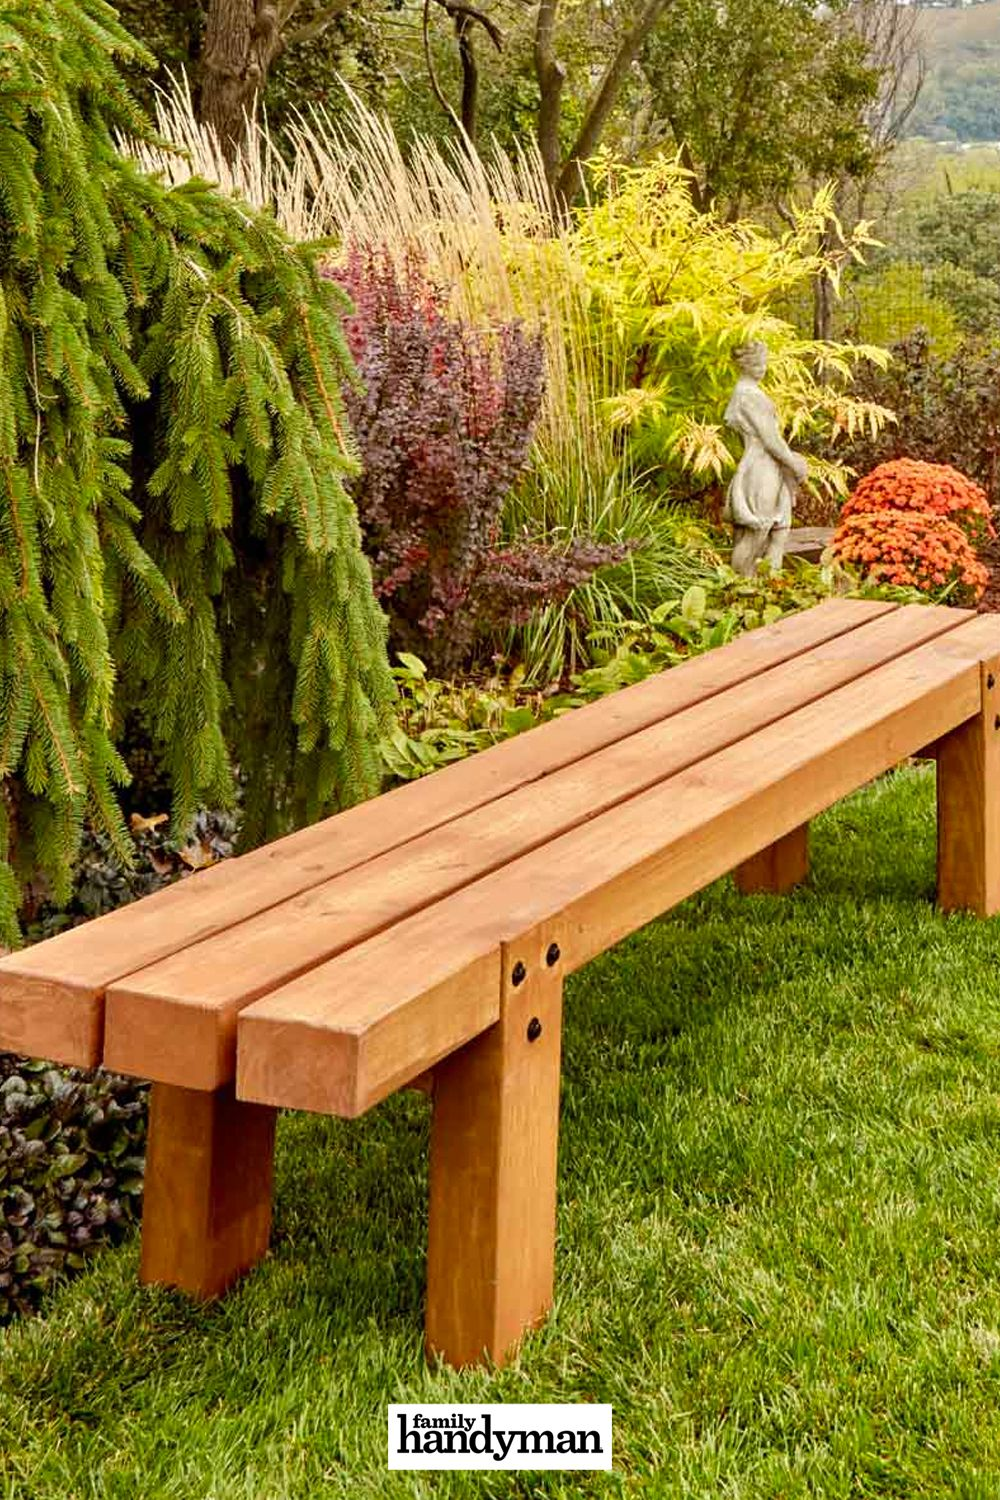 10 Easy Wooden Lawn Chairs Benches To Build In 2020 Diy Garden Decor Wooden Lawn Chairs Backyard